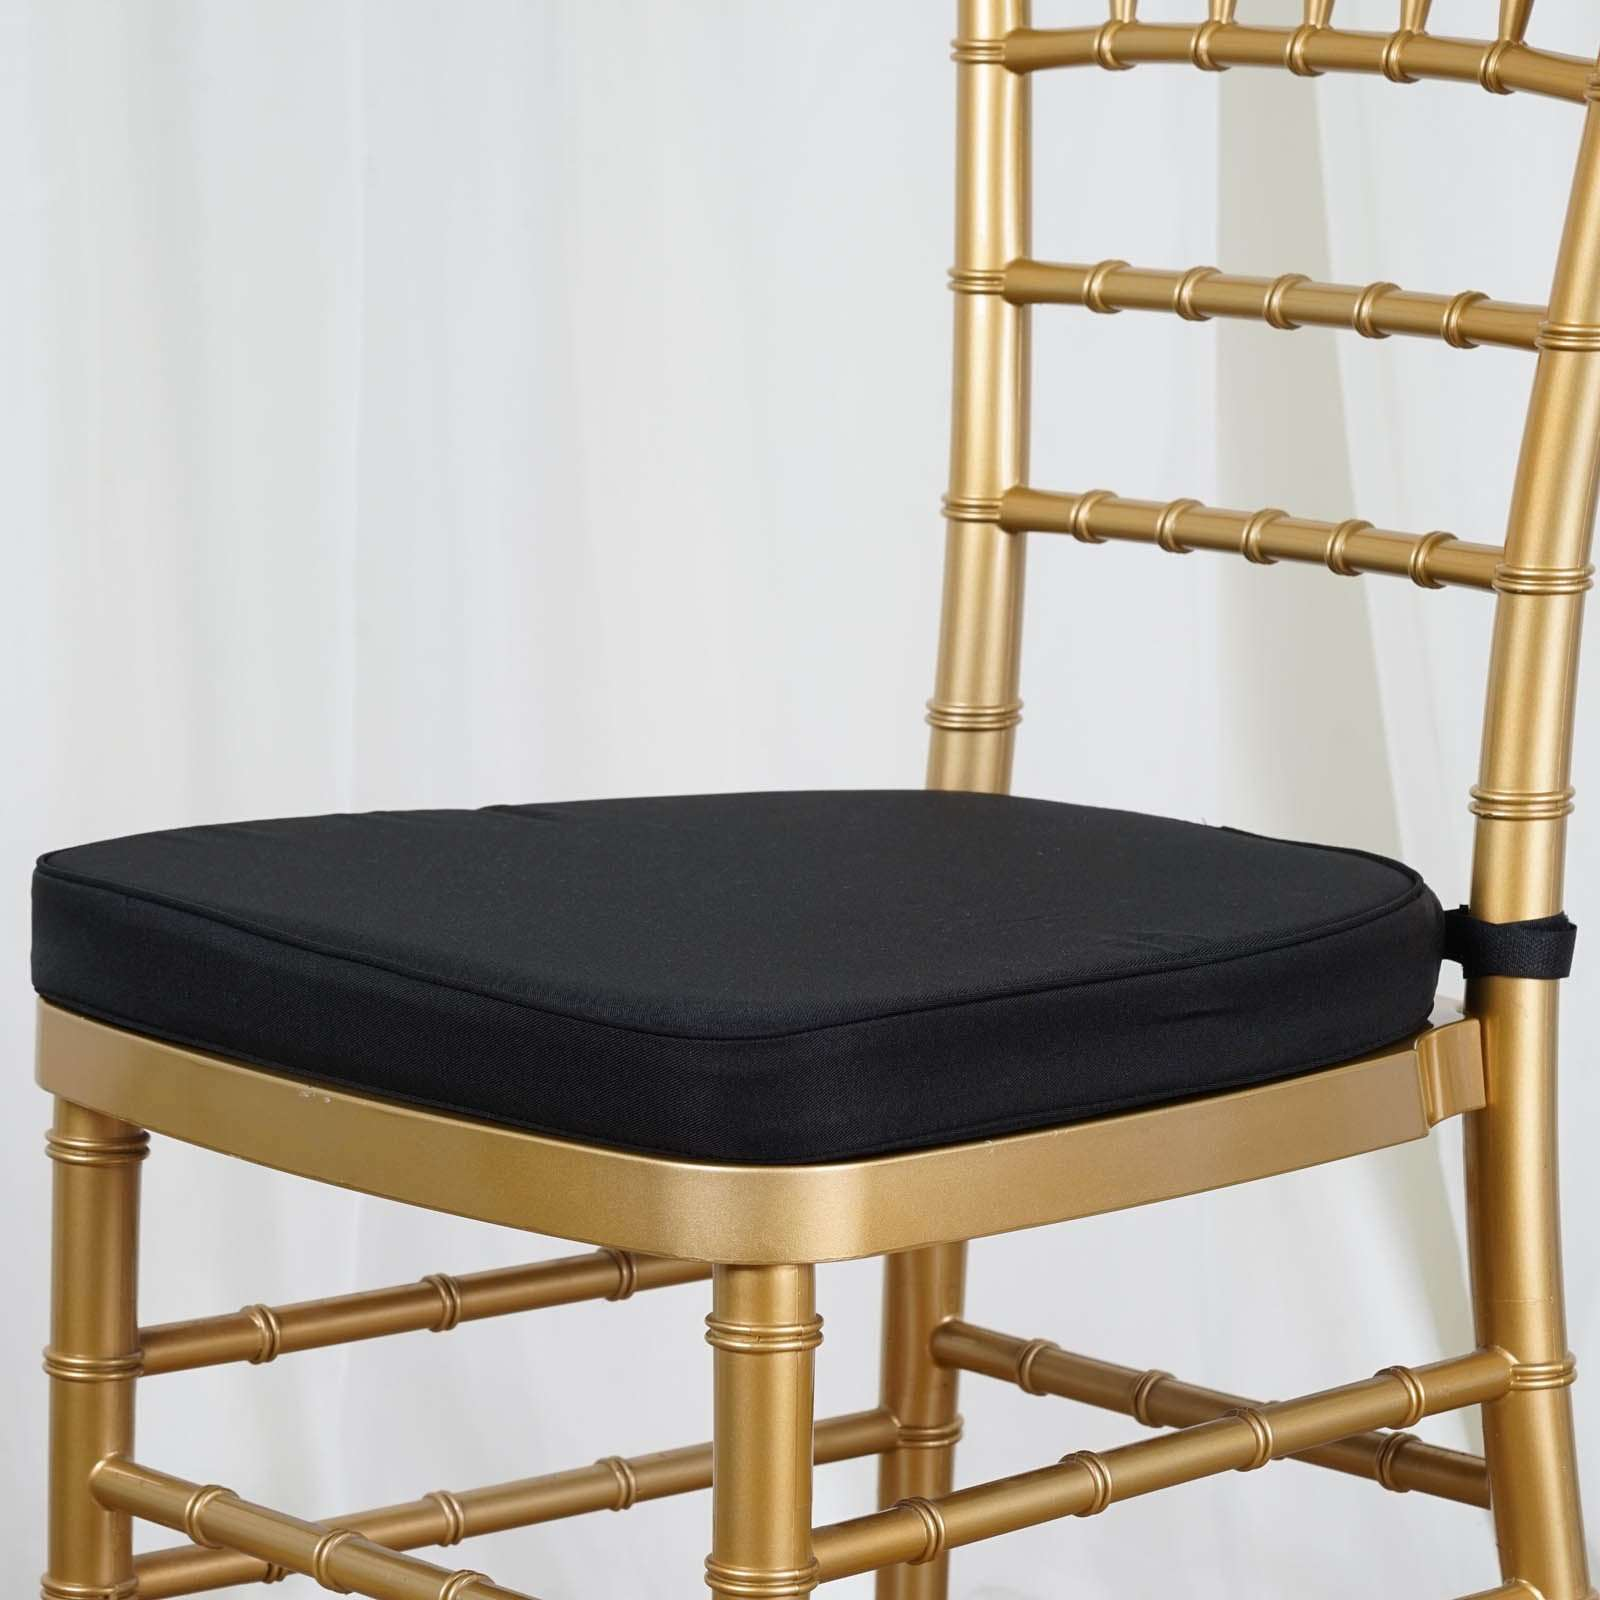 2 Thick Wholesale Black Chiavari Cushion For Beechwood Chairs Party Event